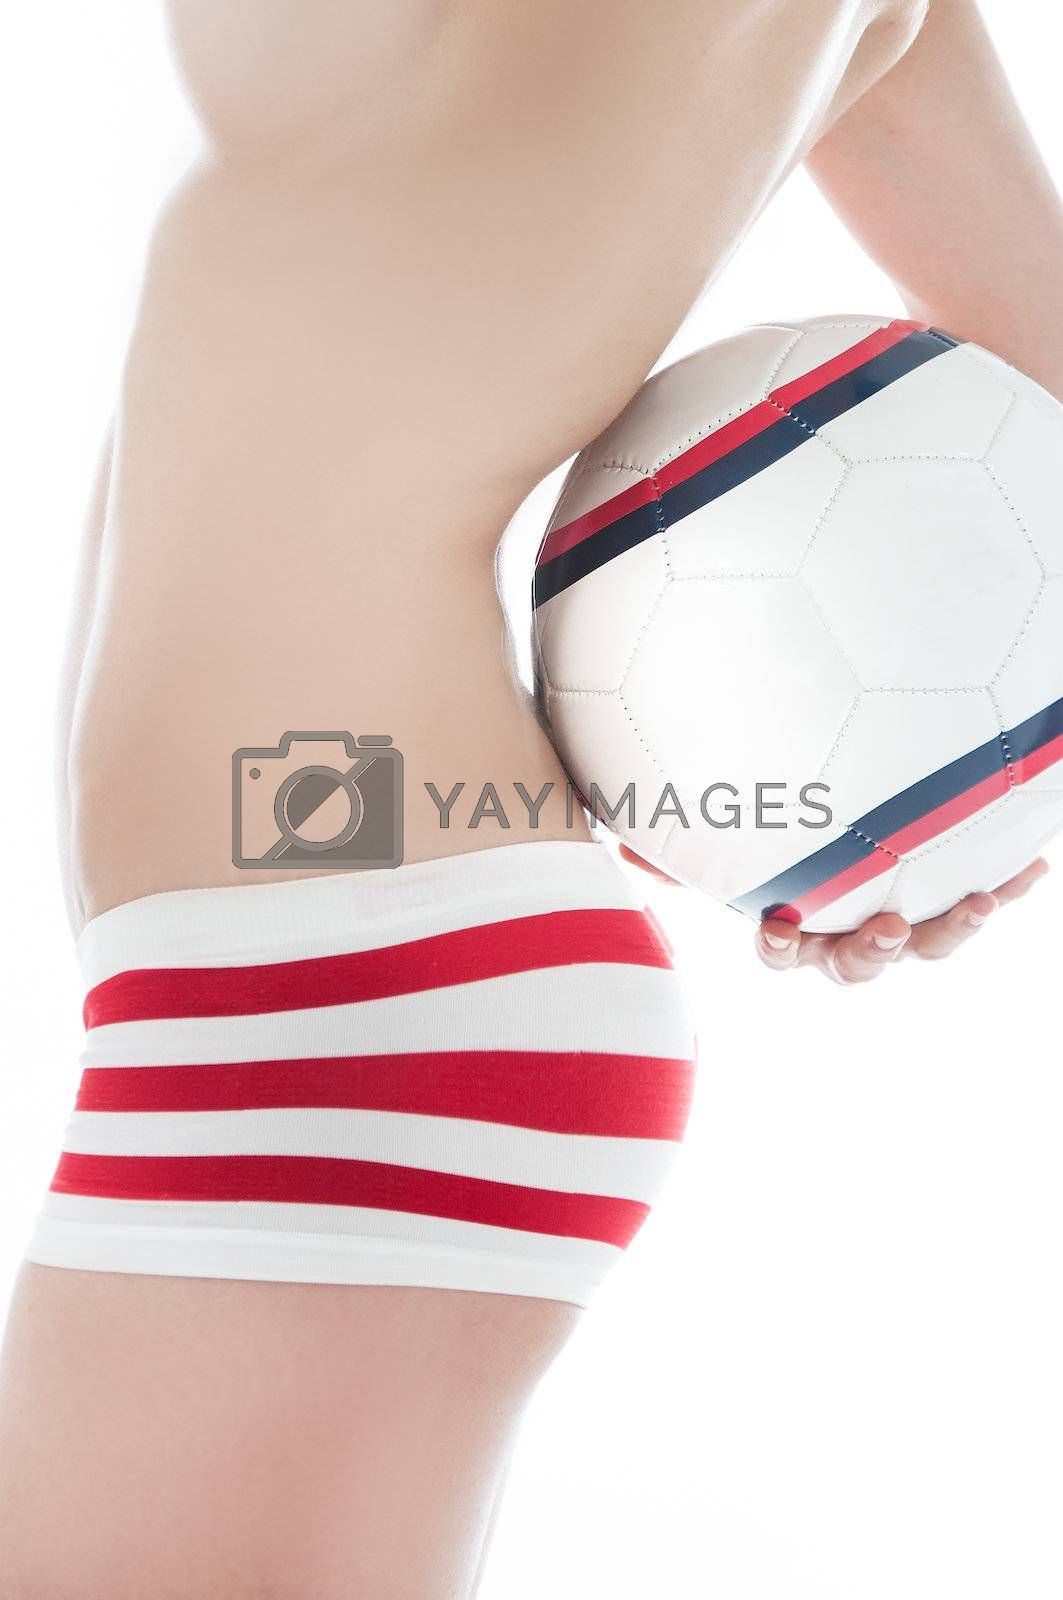 Royalty free image of USA Team Sports by CHR1